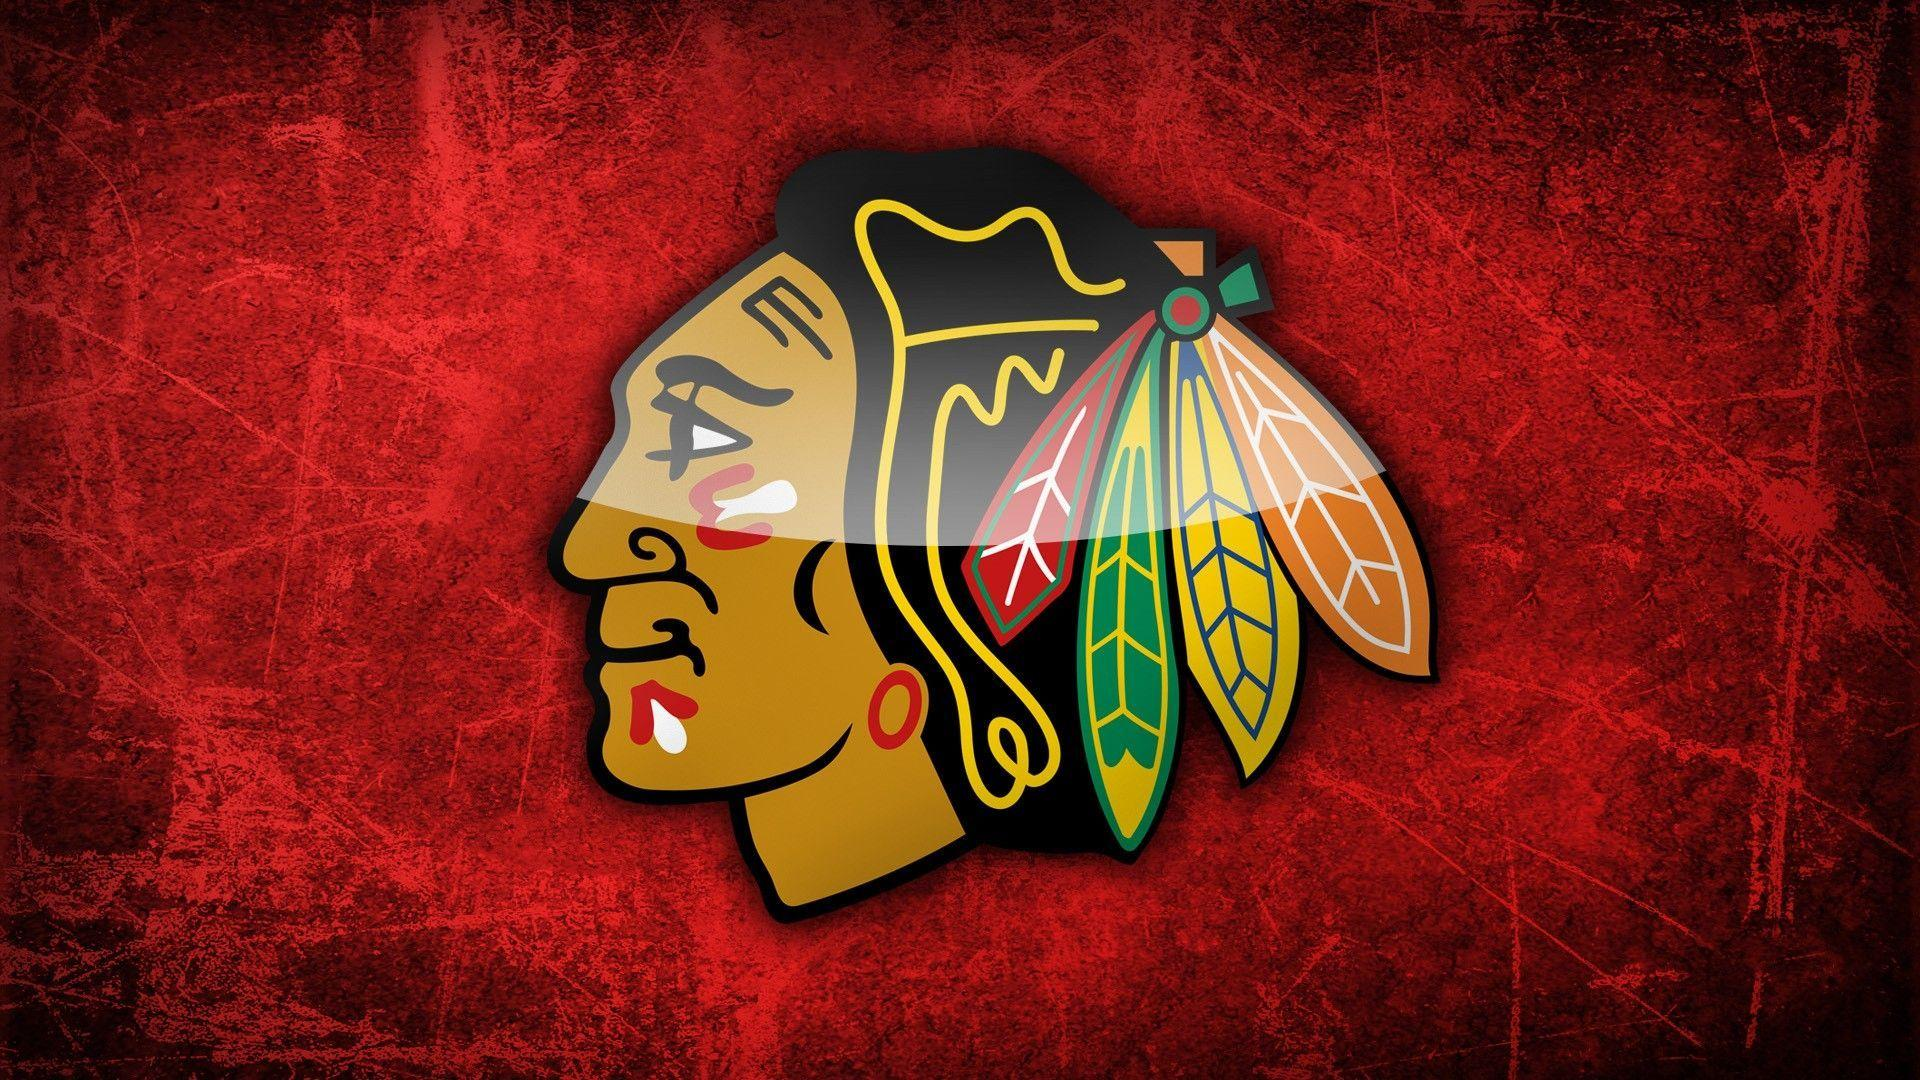 Chicago Sports Iphone Wallpaper Hd: Chicago Blackhawks Desktop Backgrounds